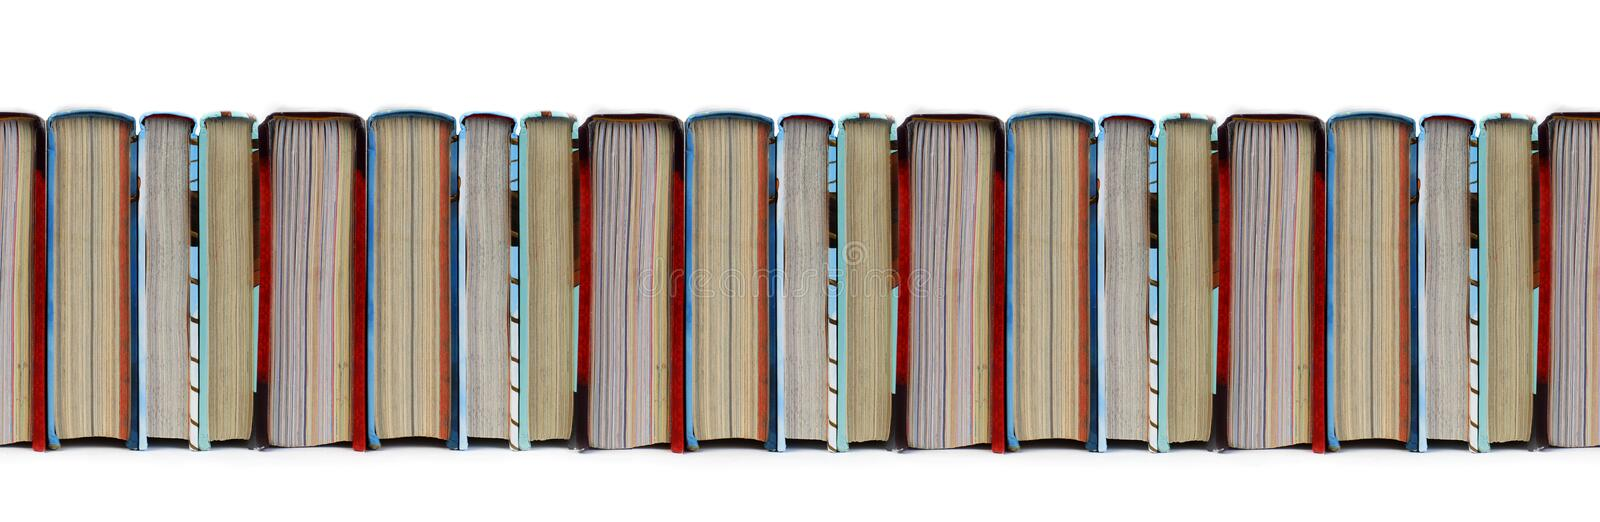 Colorful Books in a row seamless pattern royalty free stock photography